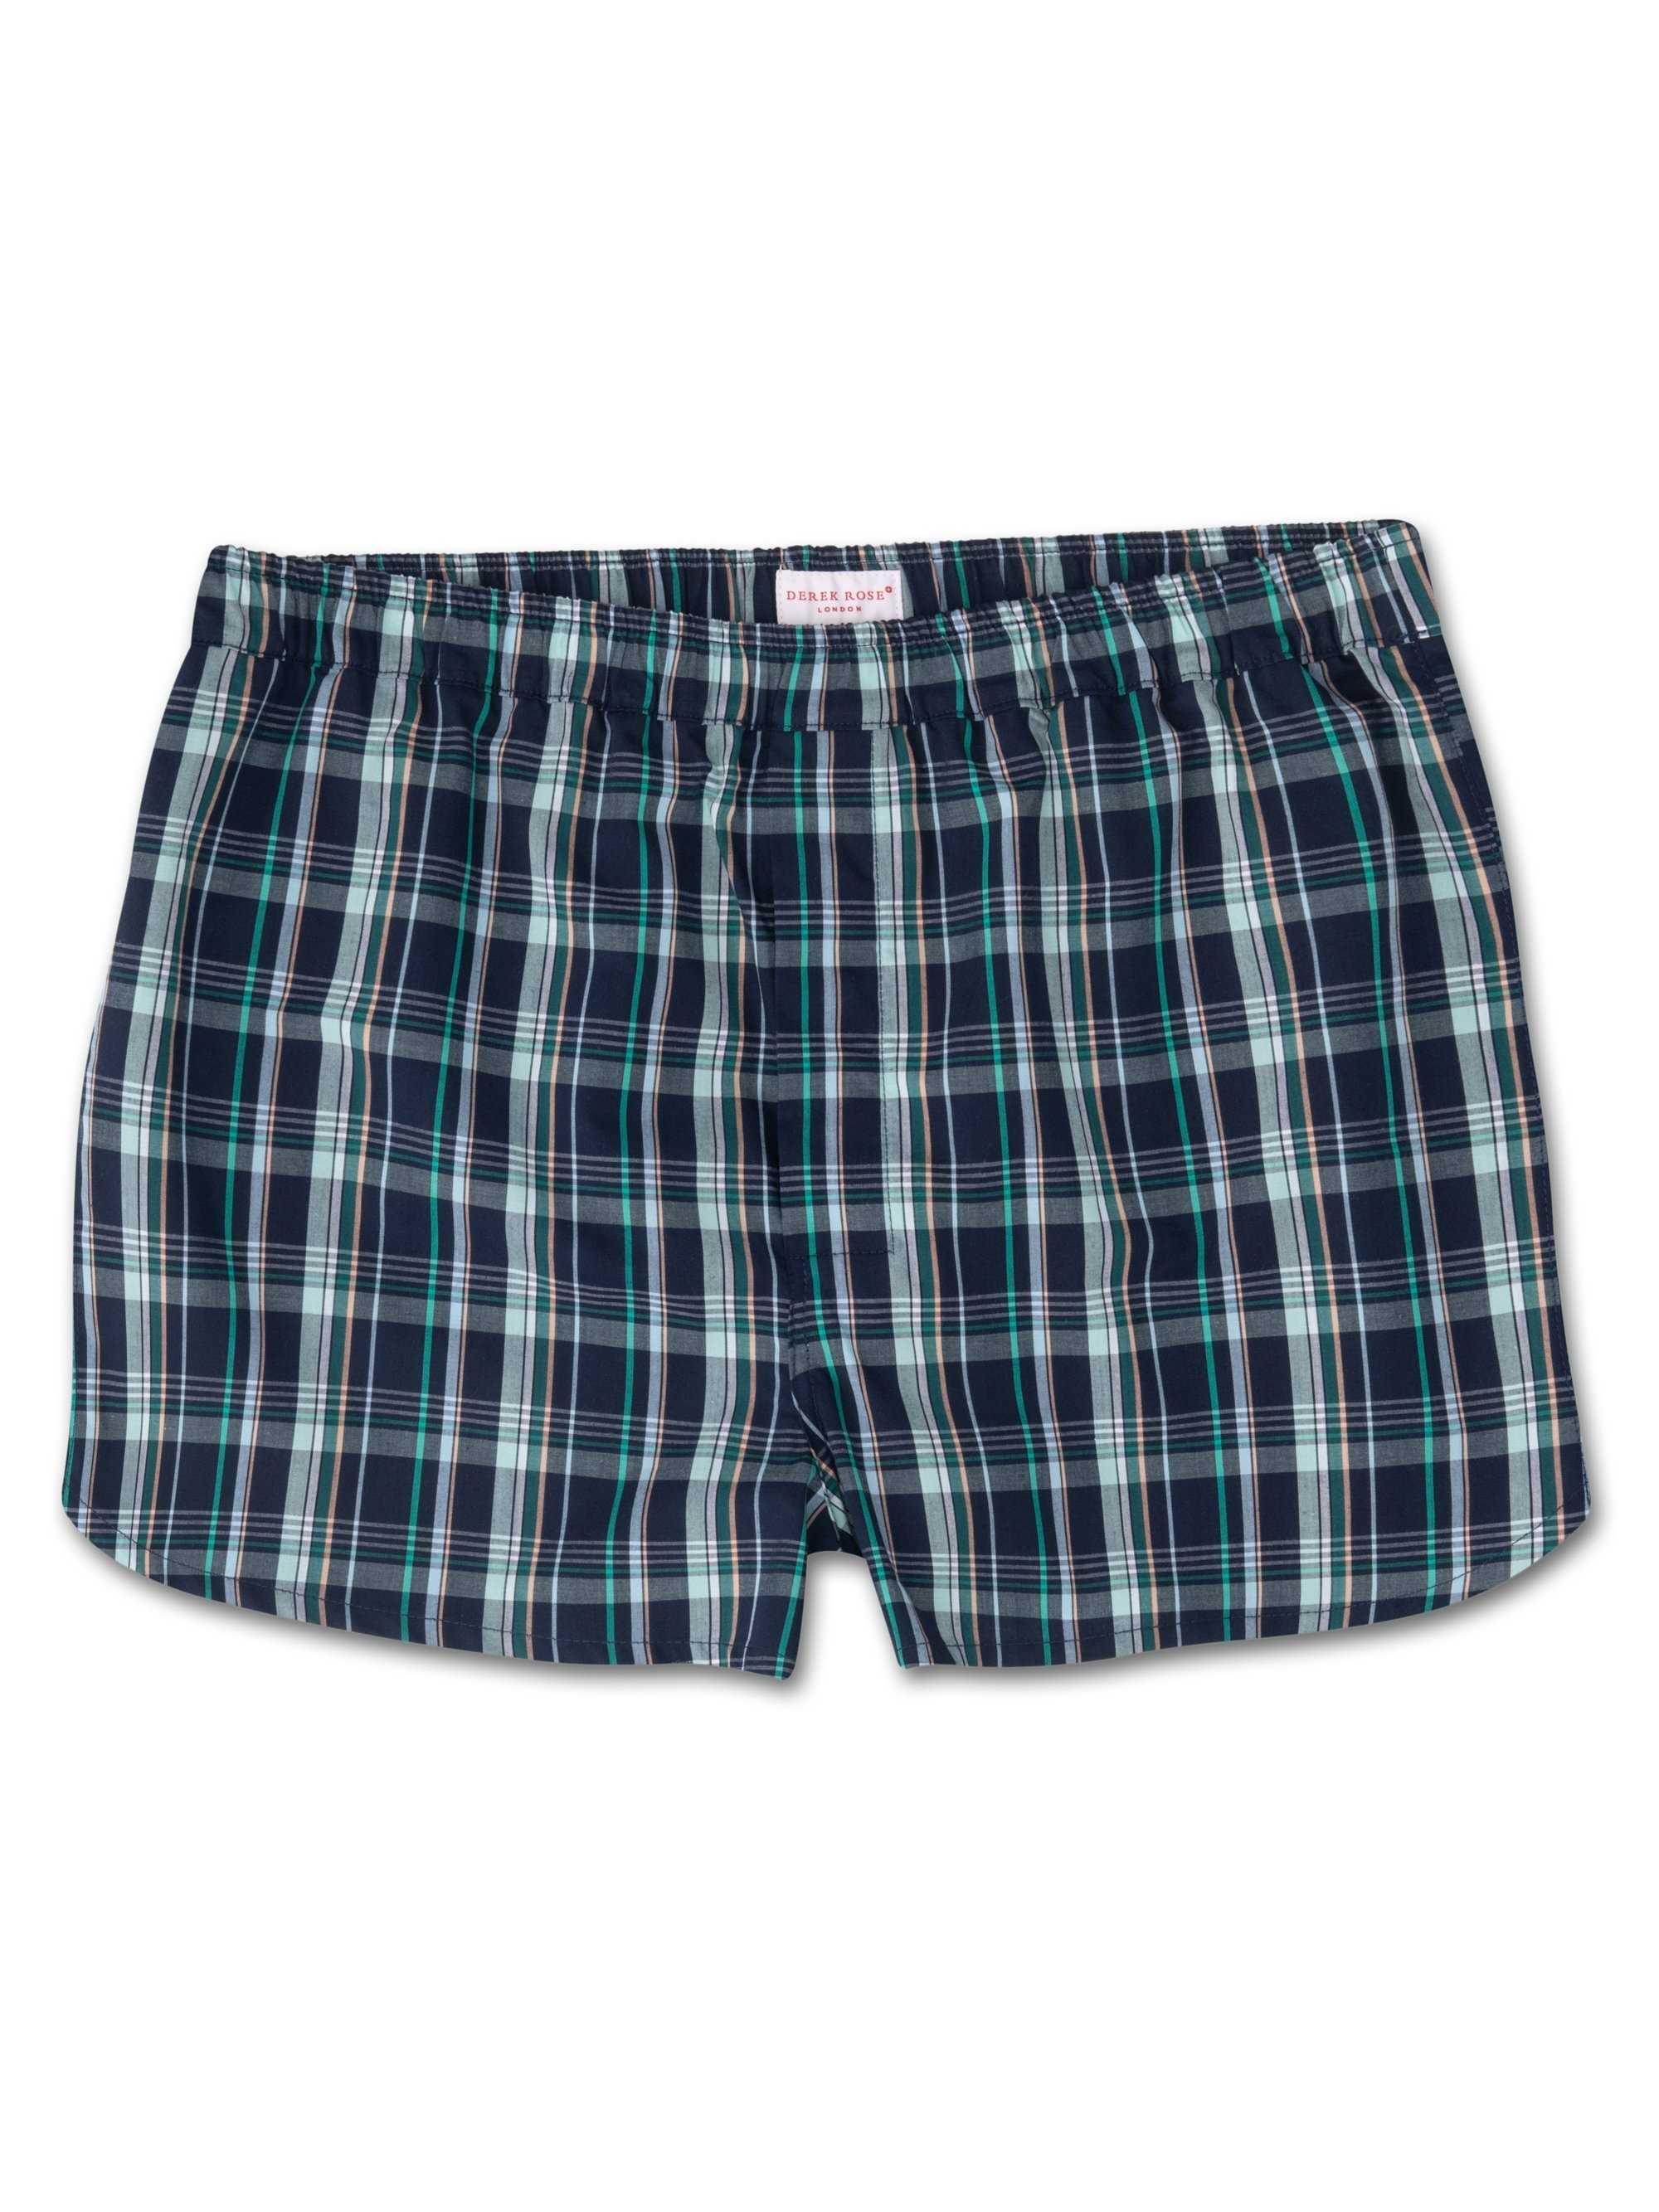 Men's Modern Fit Boxer Shorts Barker 21 Cotton Check Multi